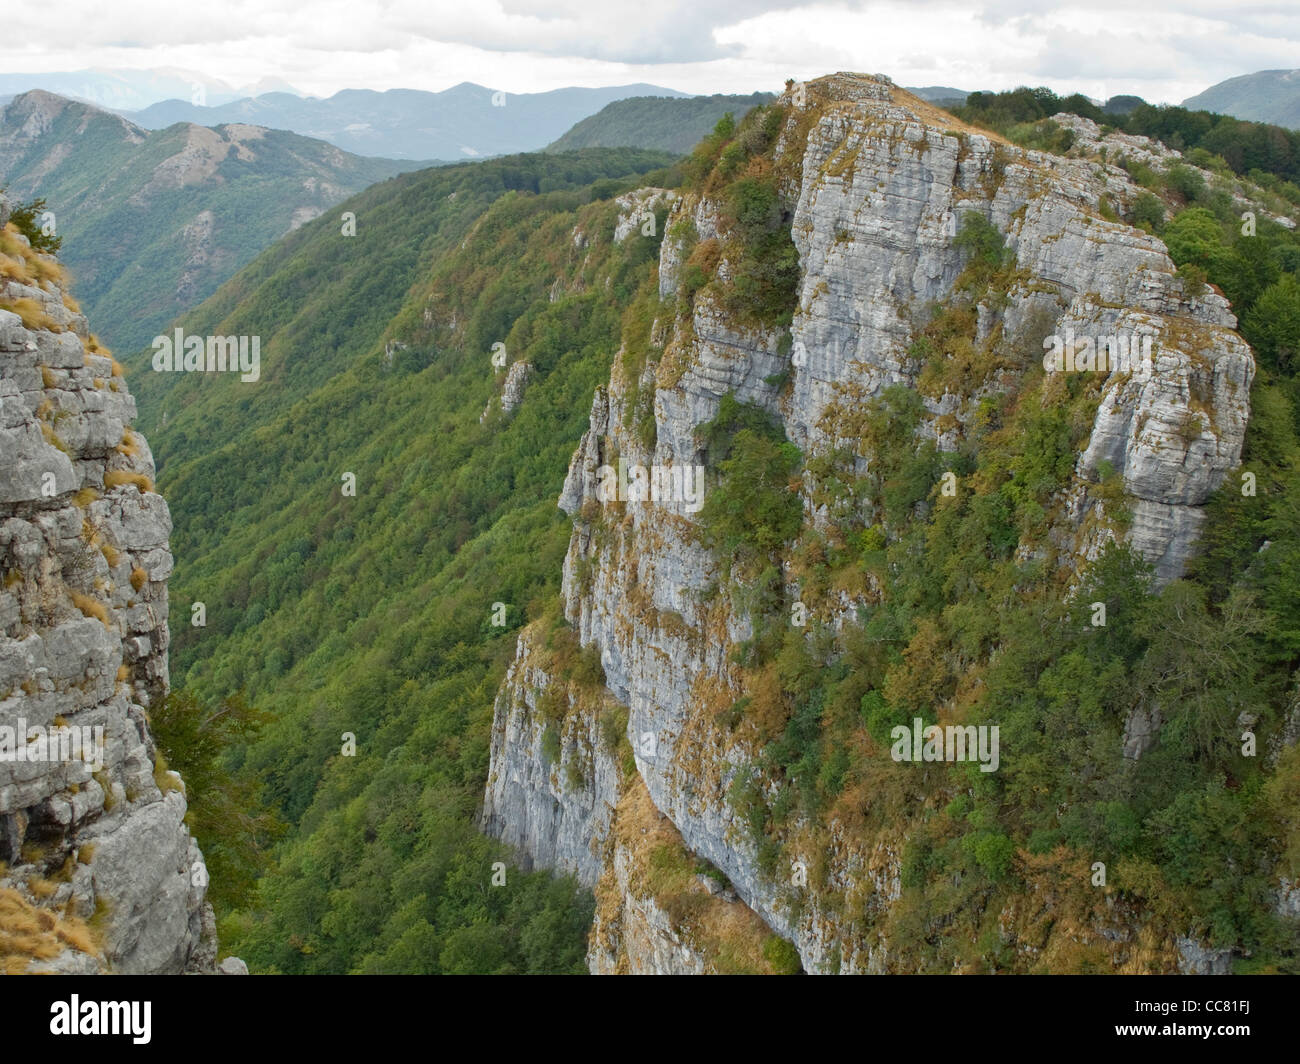 Limestone cliffs in Alburni mountains, in Cilento National Park, province of Salerno, region of Campania, Southern - Stock Image